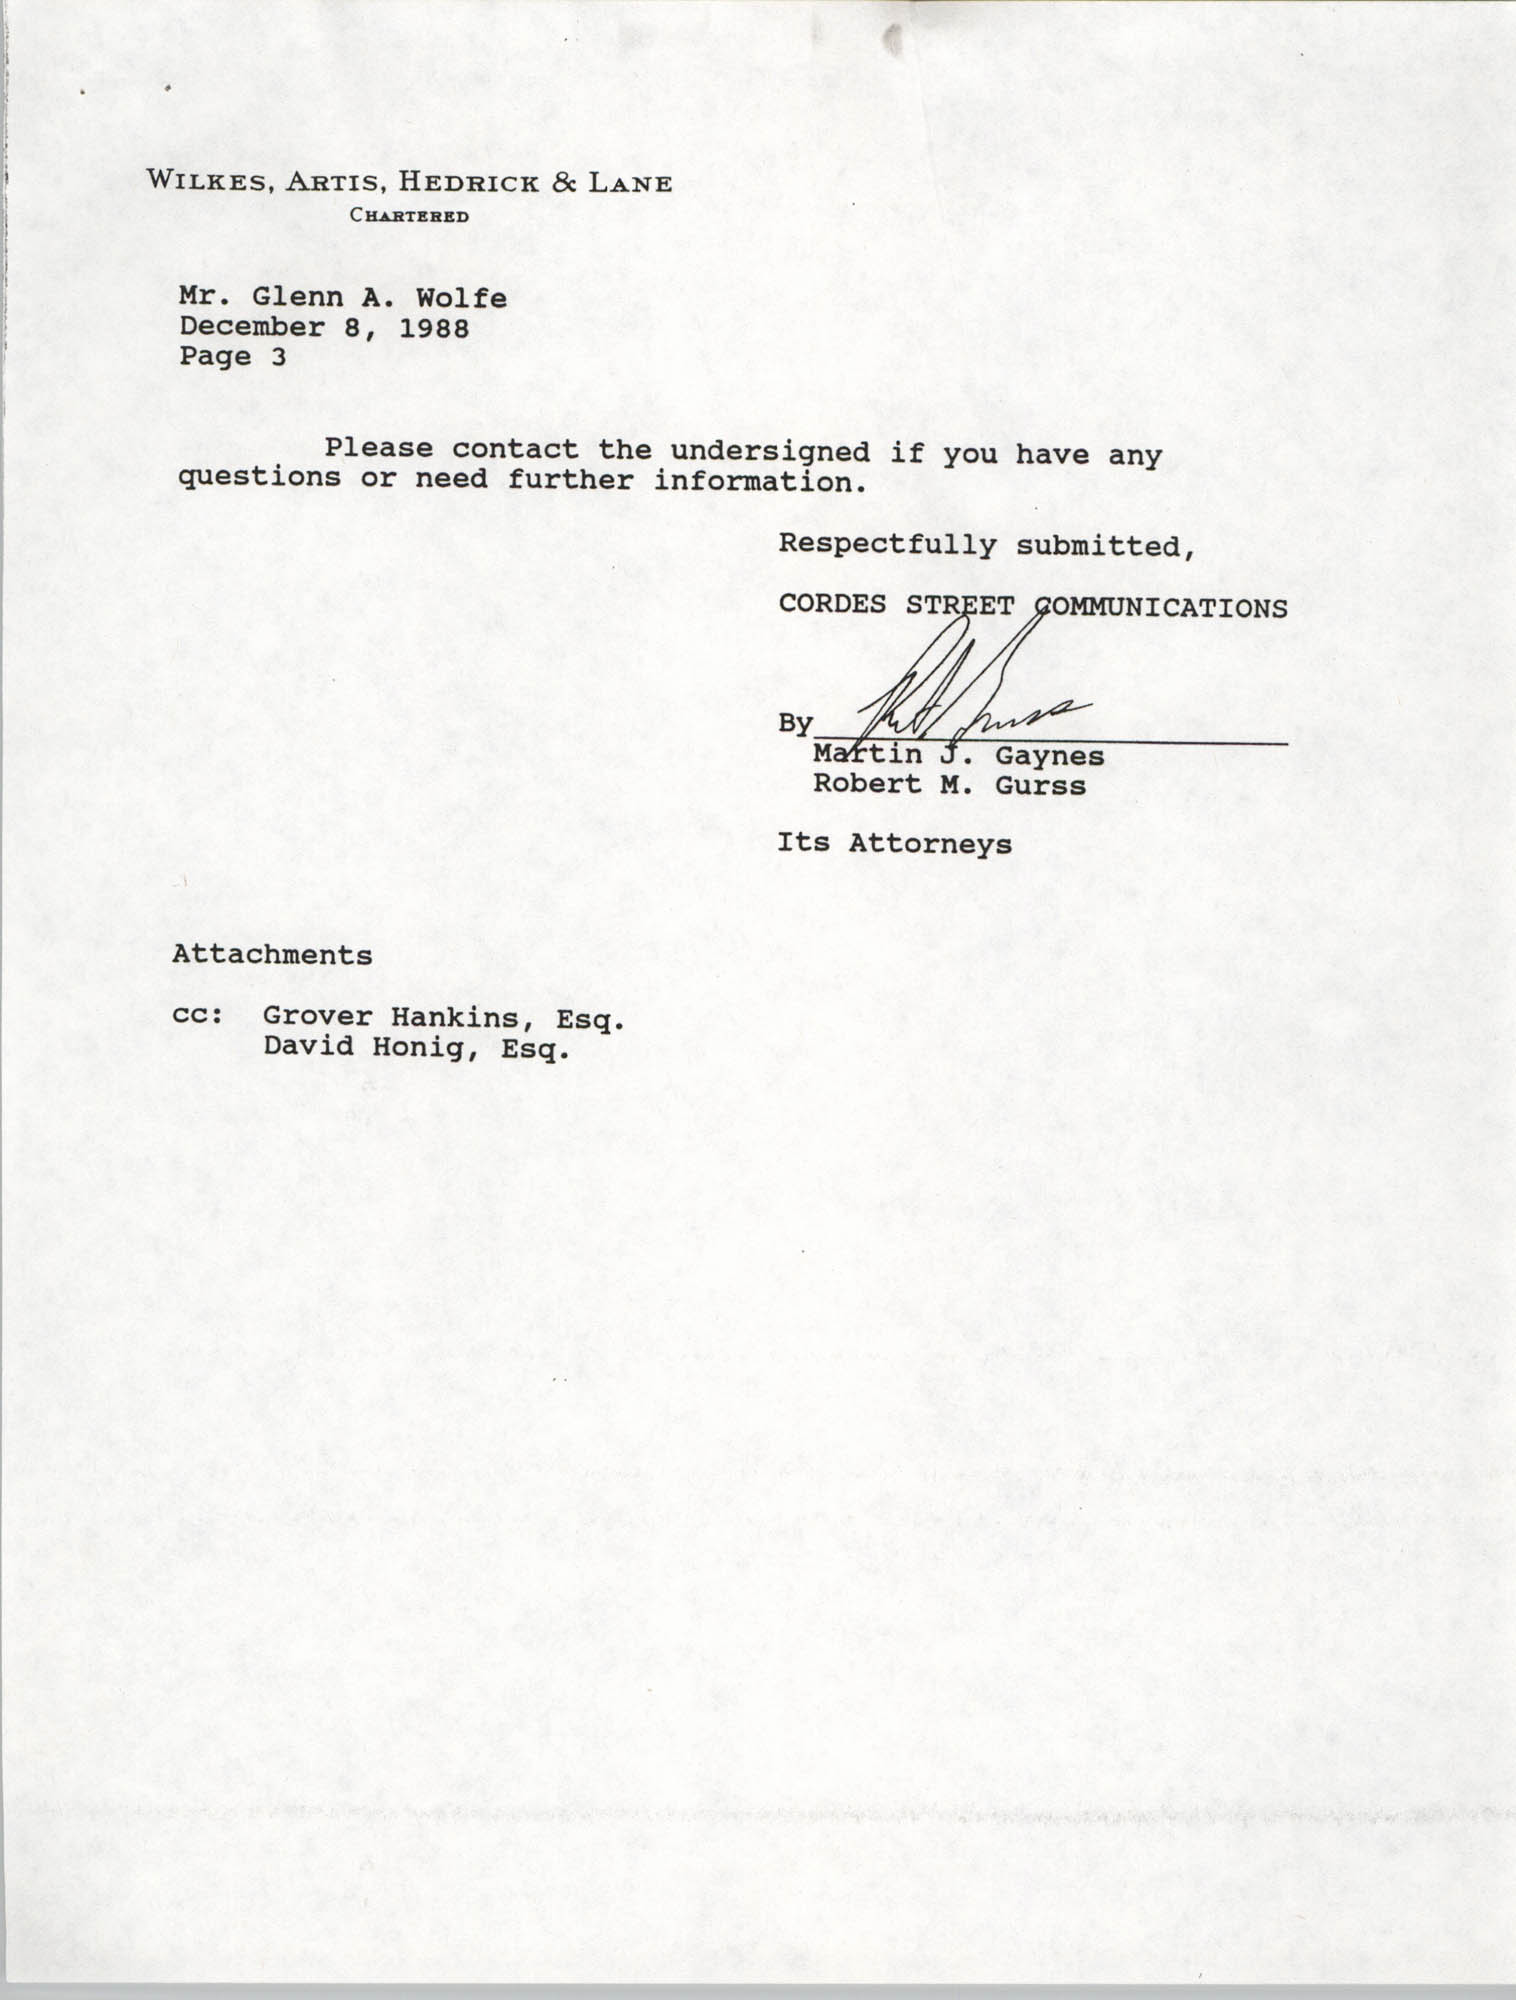 Letter from Martin J. Gaynes and Robert M. Gurss to Glenn A. Wolfe, December 8, 1988, Page 3